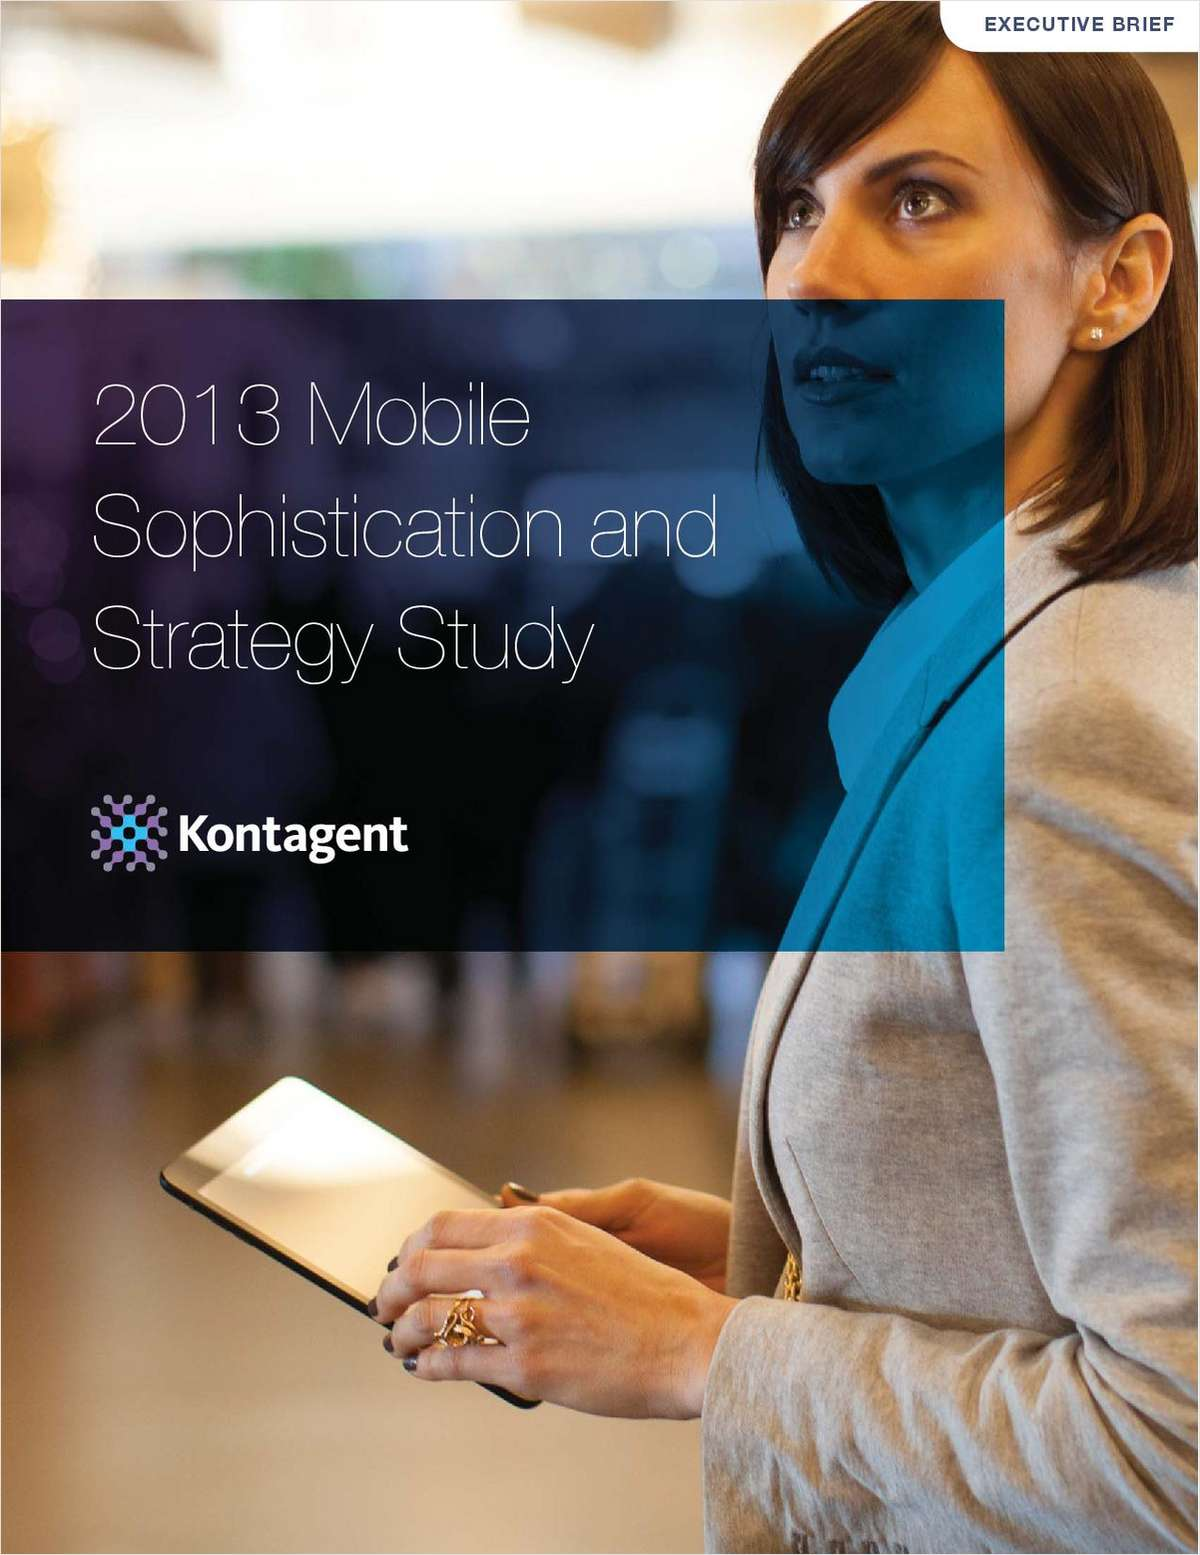 2013 Mobile Sophistication and Strategy Study